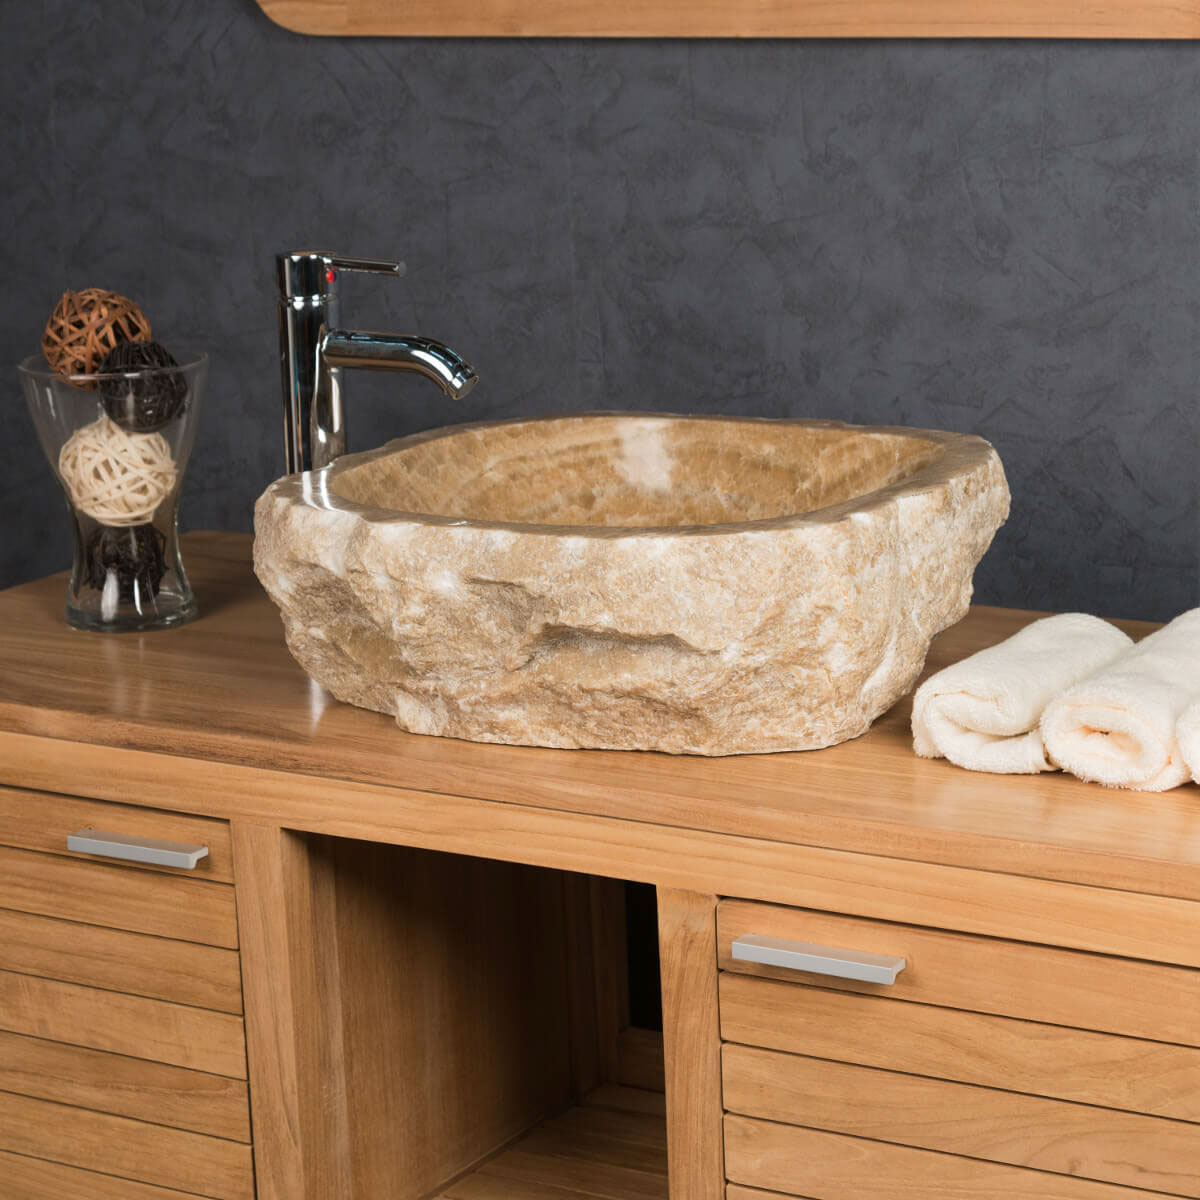 Vasque Vasque En Pierre Naturelle Ou En Bois Wanda Collection